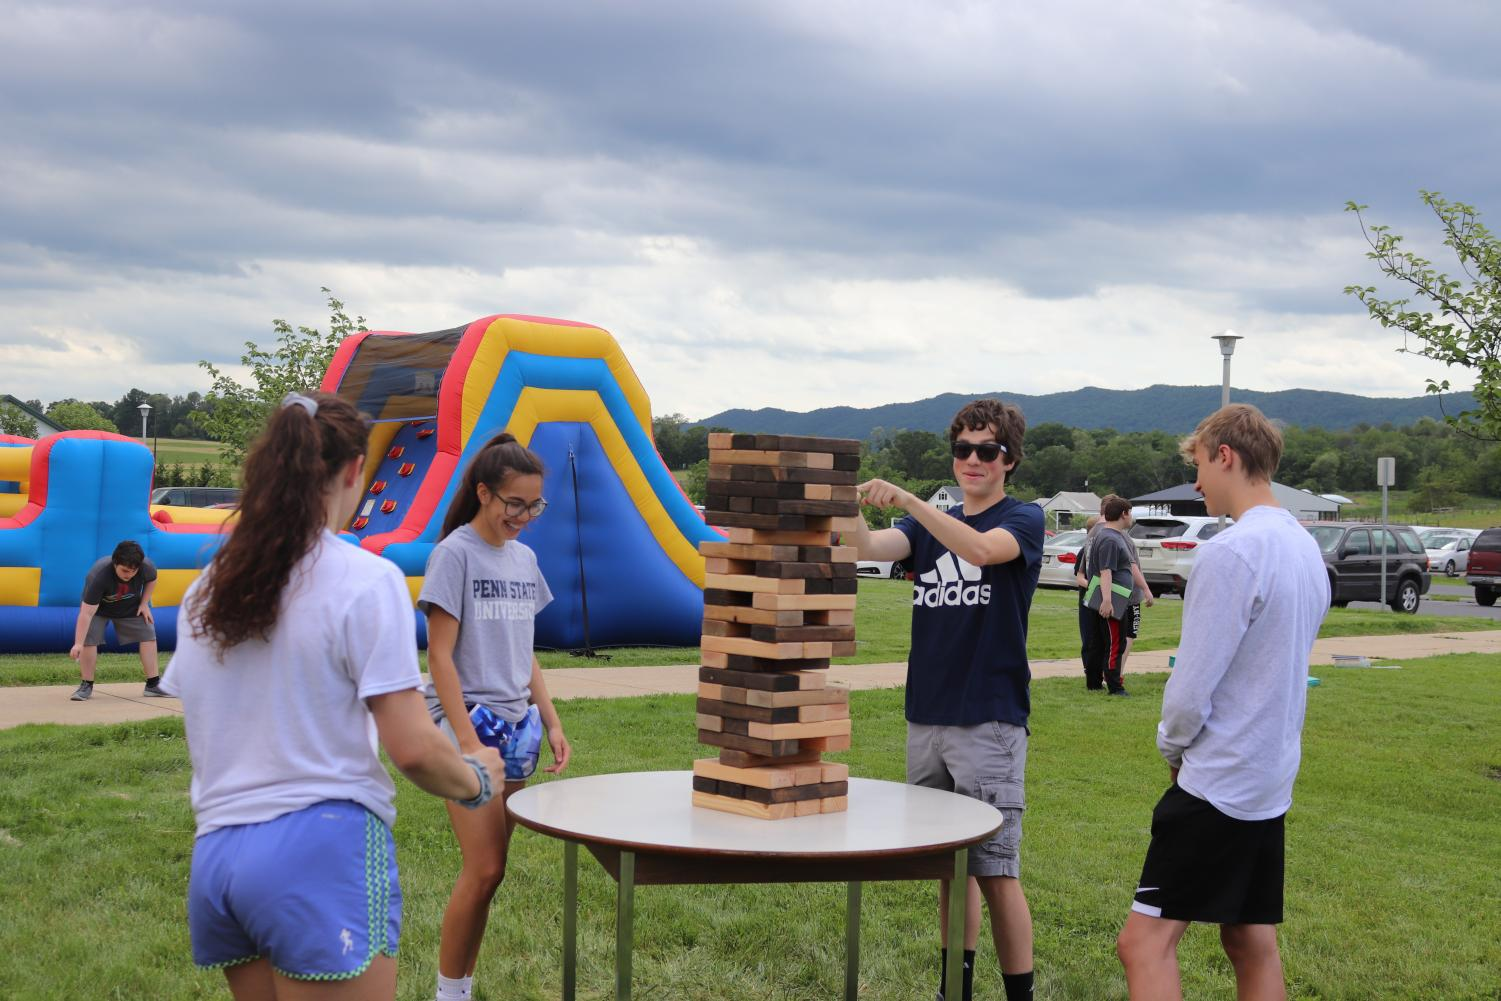 Playing some jenga, Sadie Garbinski (9), Ashley Alfree (9), Colby Starr (10), and Kaanan Hissong (10) work to not knock down the stack.